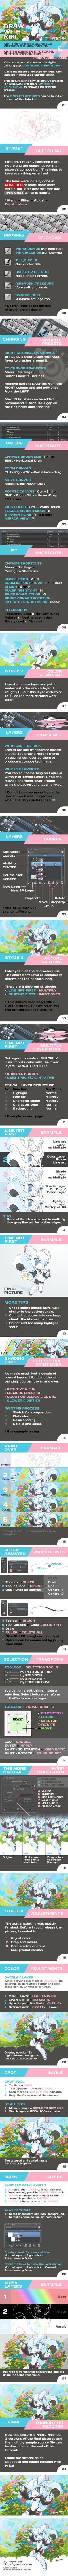 Krita Free Painting App Tutorial. This is a tutorial on the FREE open source software for digital painting and illustrations! You can get it or fine out more about it here www.krita.org. The tutorial by tysontan on deviantart.